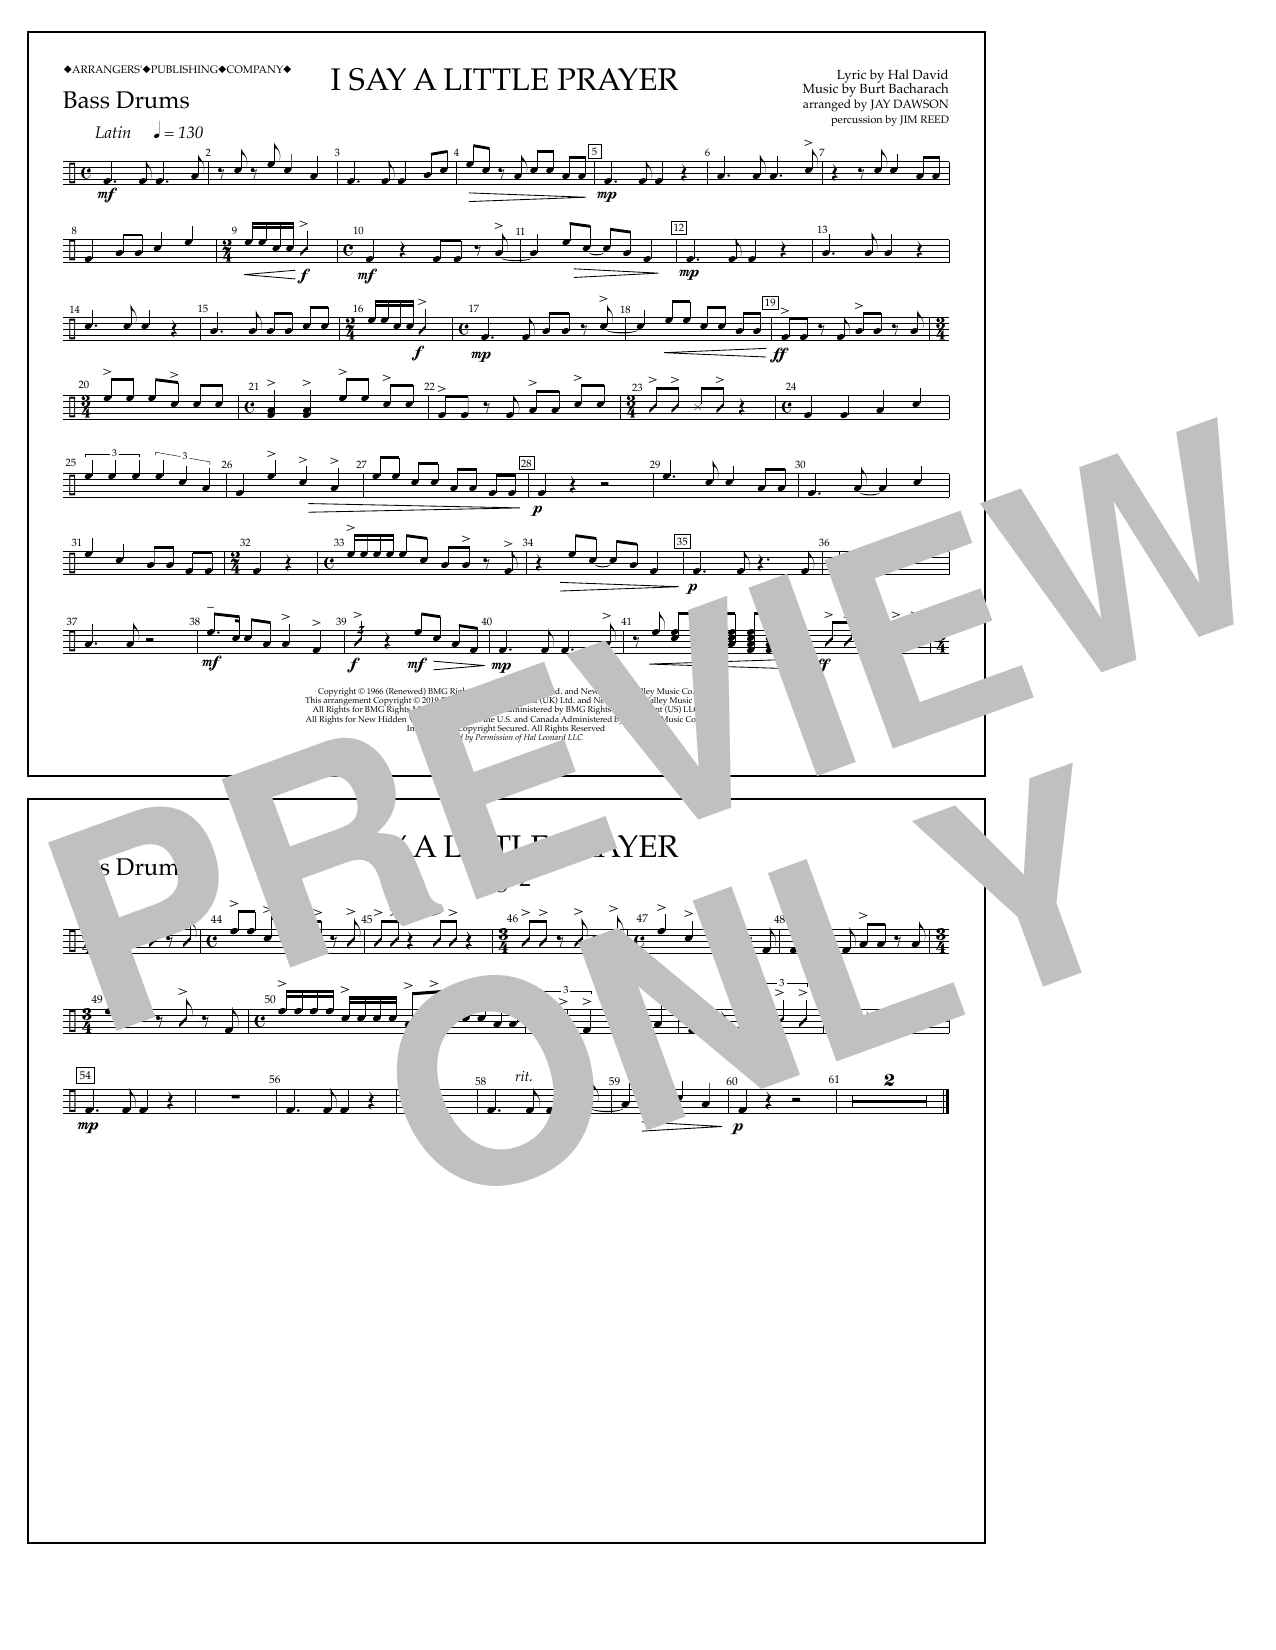 Aretha Franklin I Say a Little Prayer (arr. Jay Dawson) - Bass Drums sheet music notes and chords